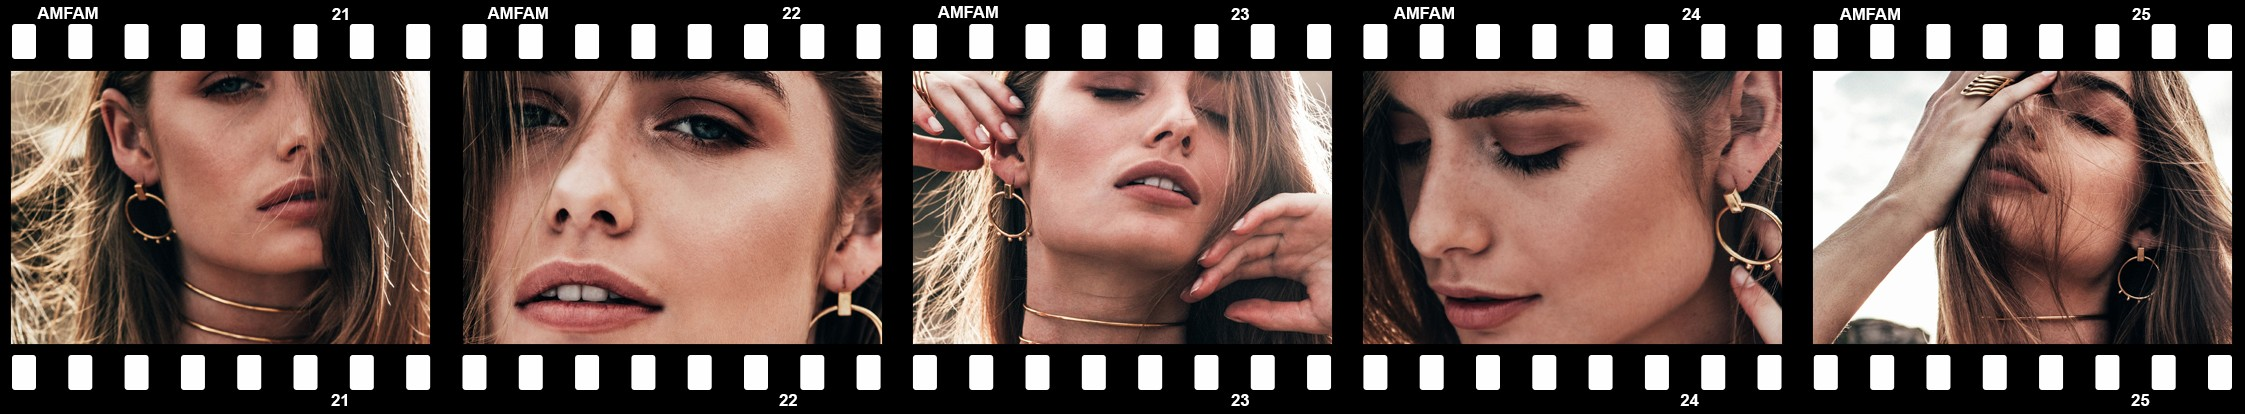 Eleven past eleven amath magnan editorial